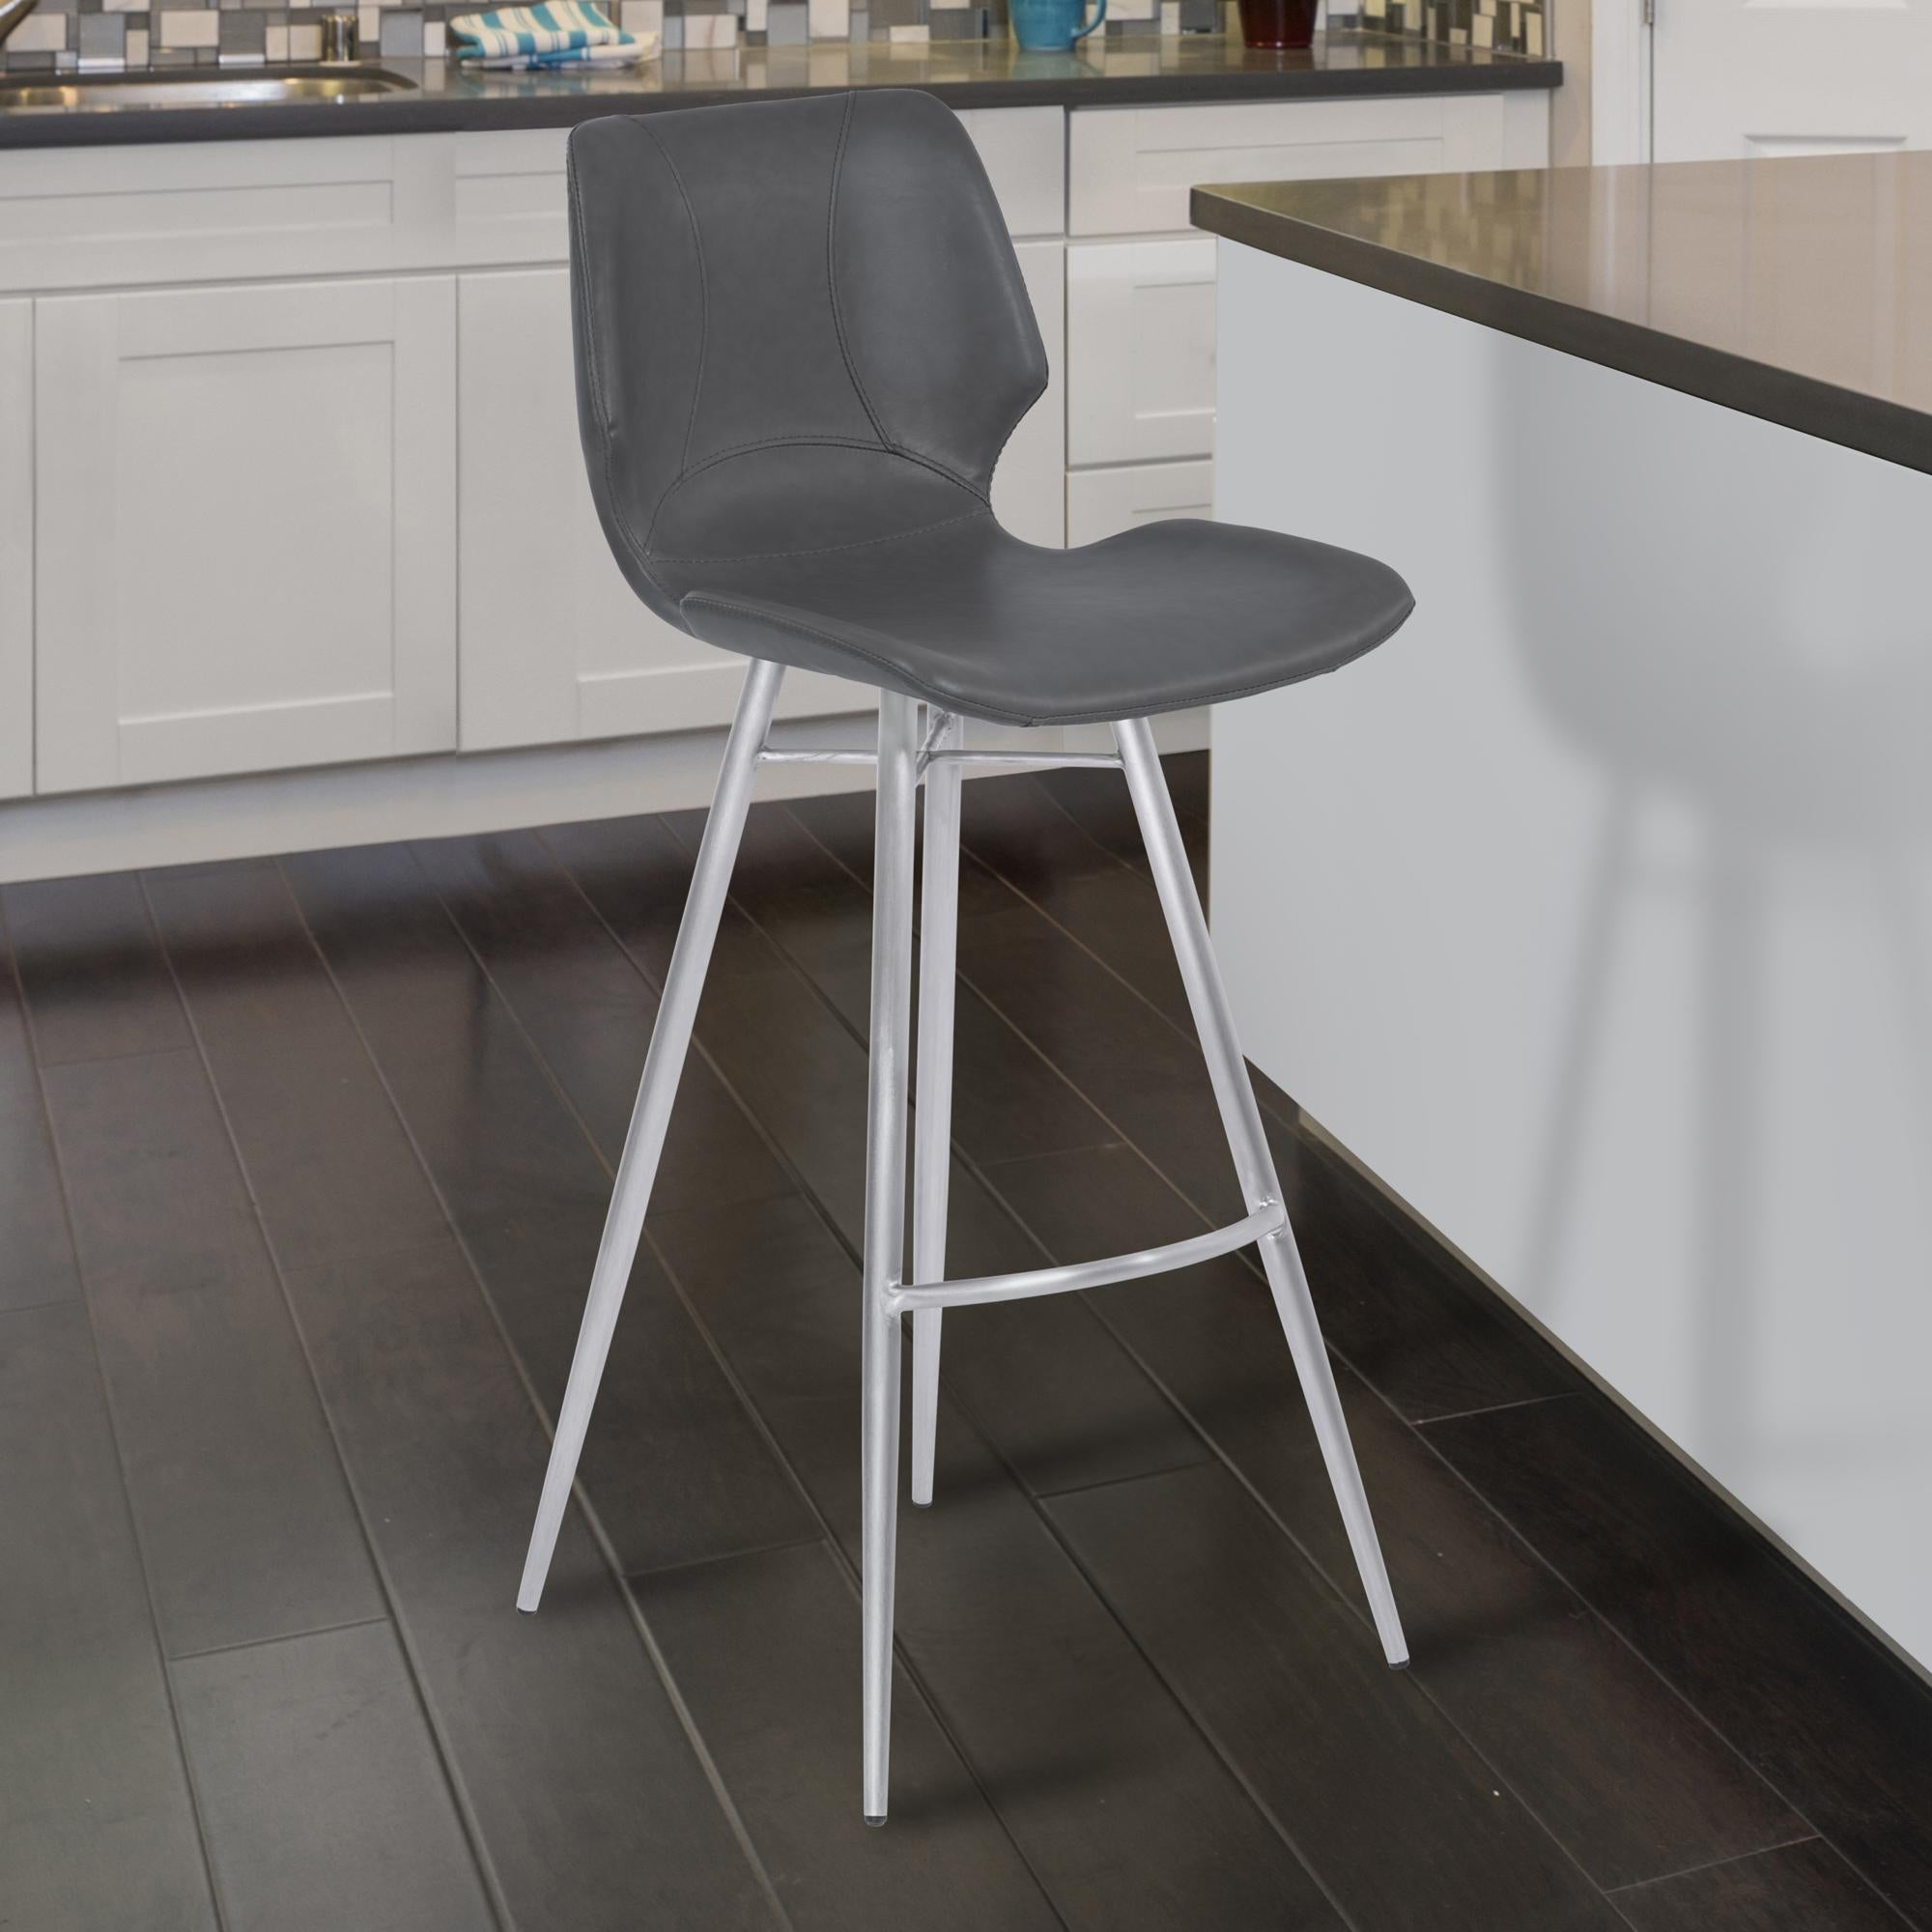 Armen Living Zurich 26' Counter Height Metal Barstool in Vintage Gray Faux Leather with Brushed Stainless Steel Finish